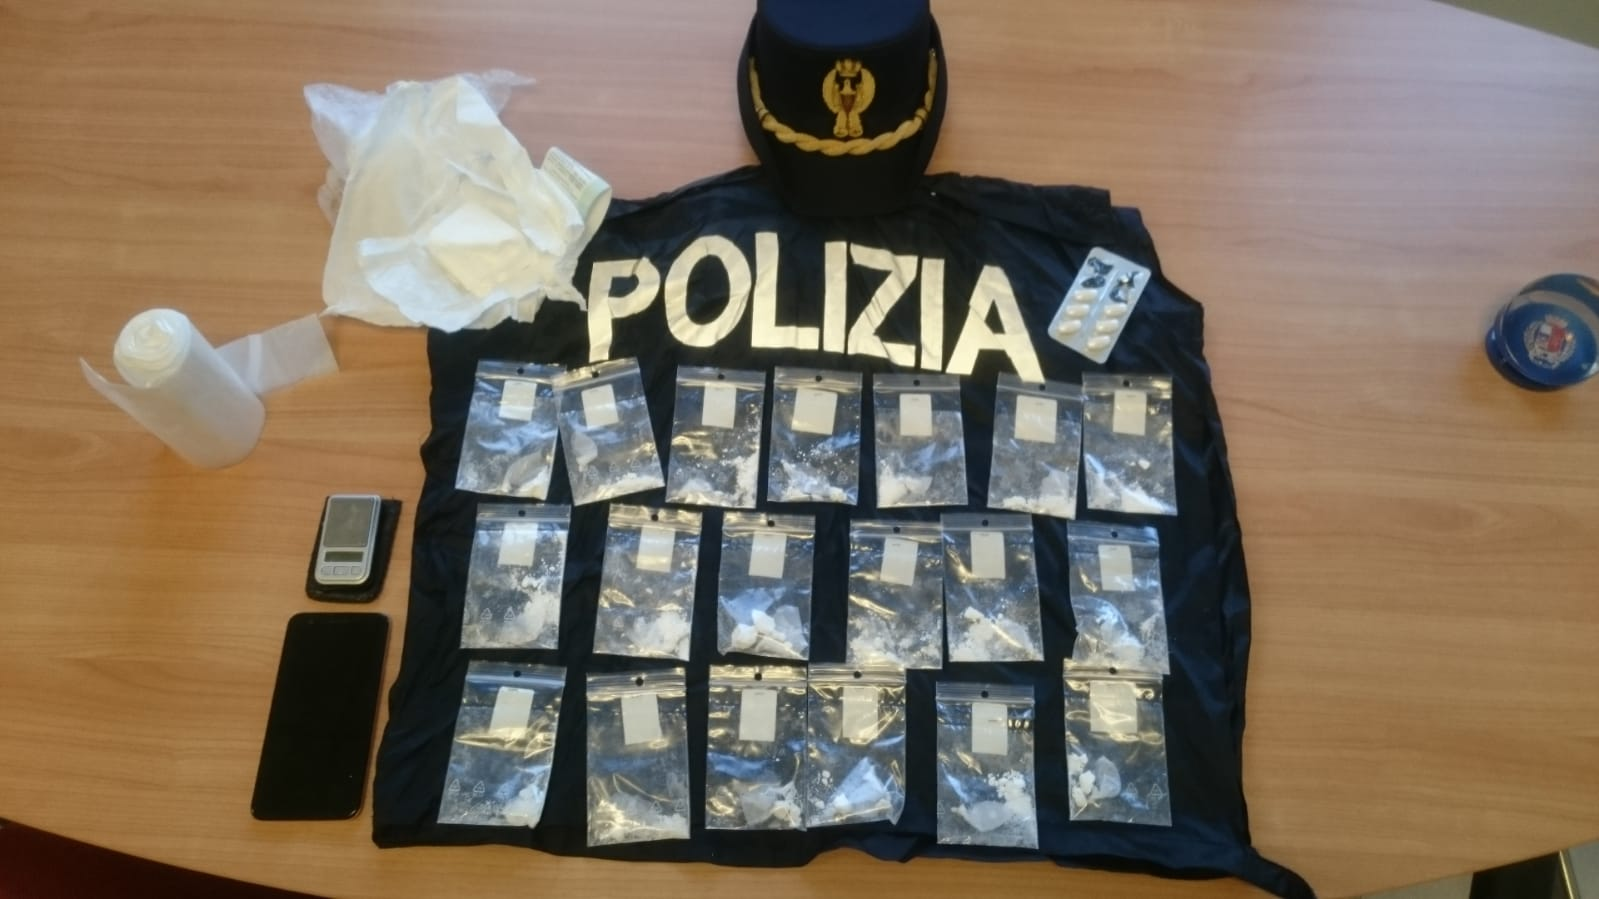 Arrestato in flagranza mentre spaccia cocaina